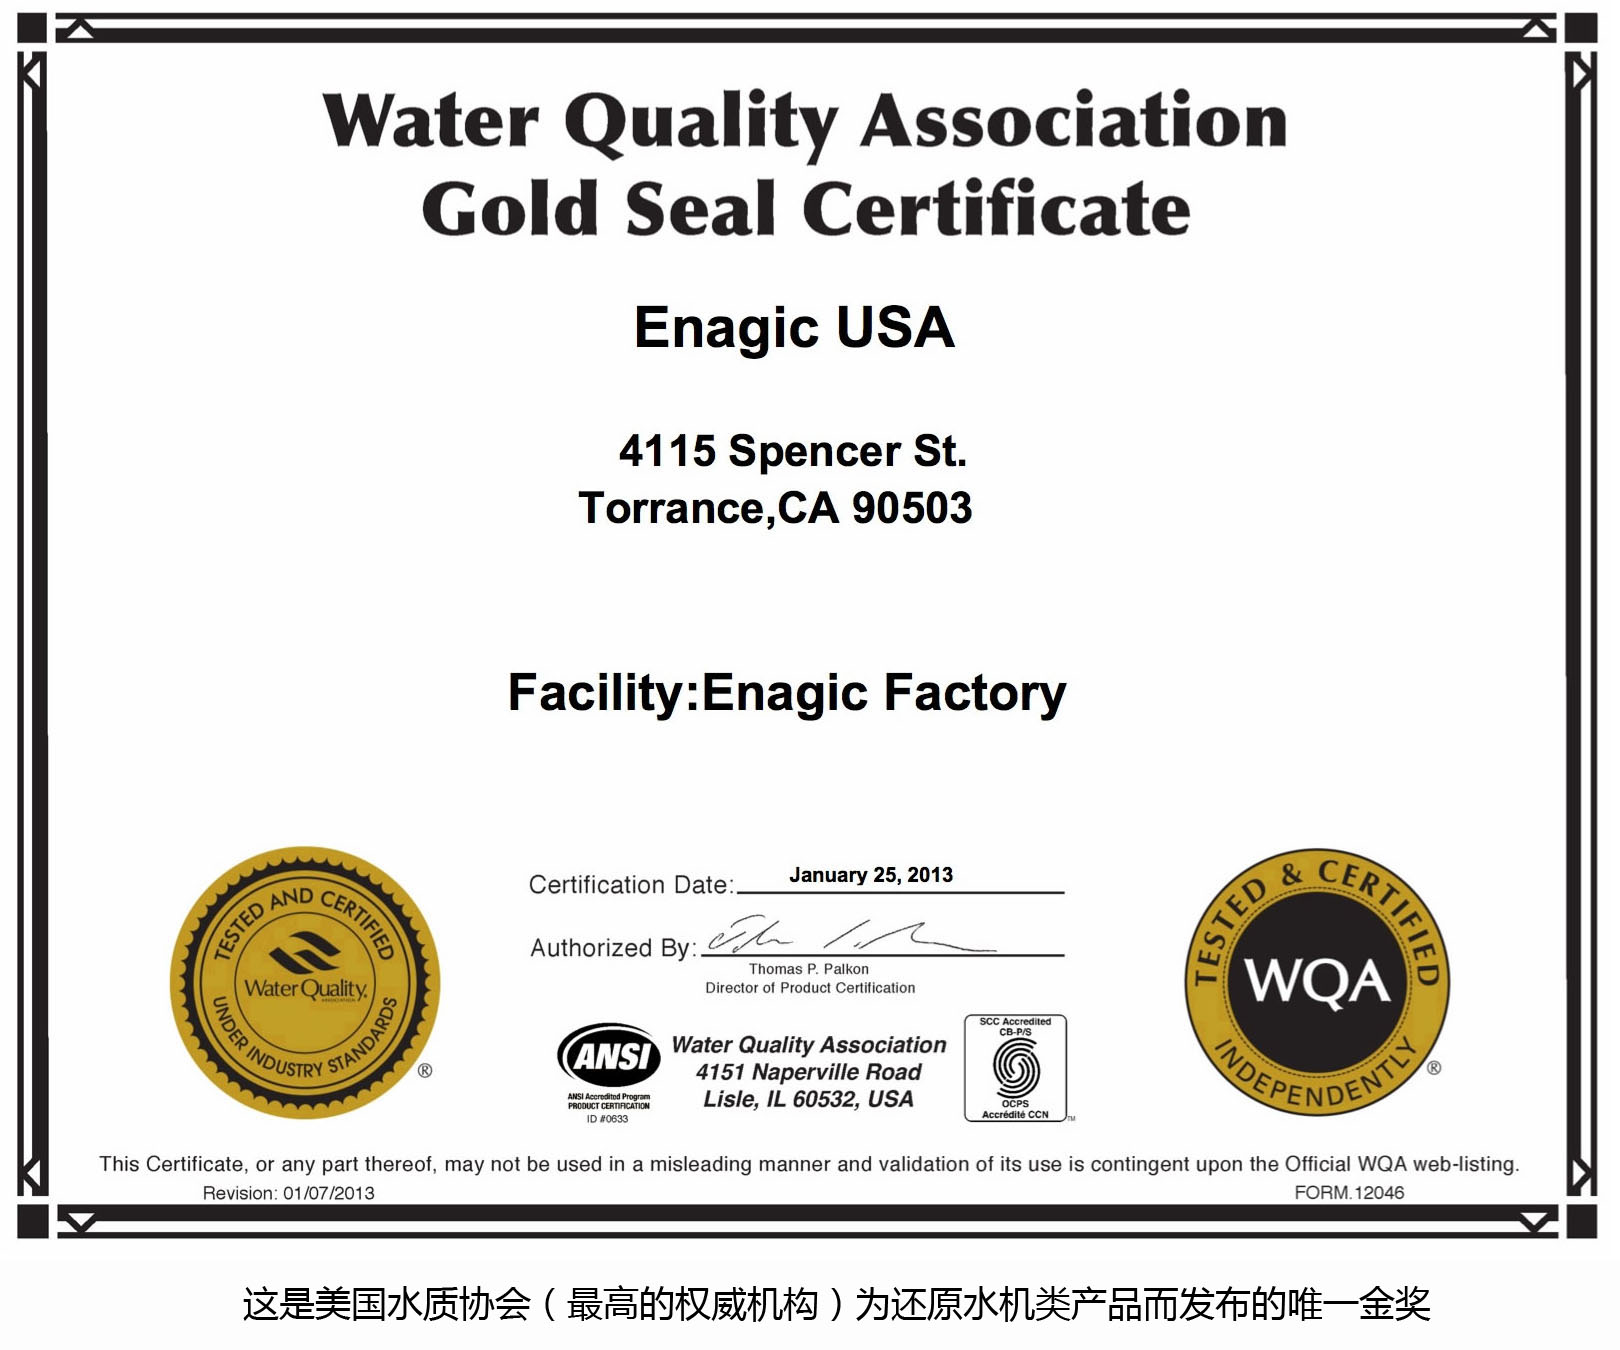 WQA_Gold_Seal copy